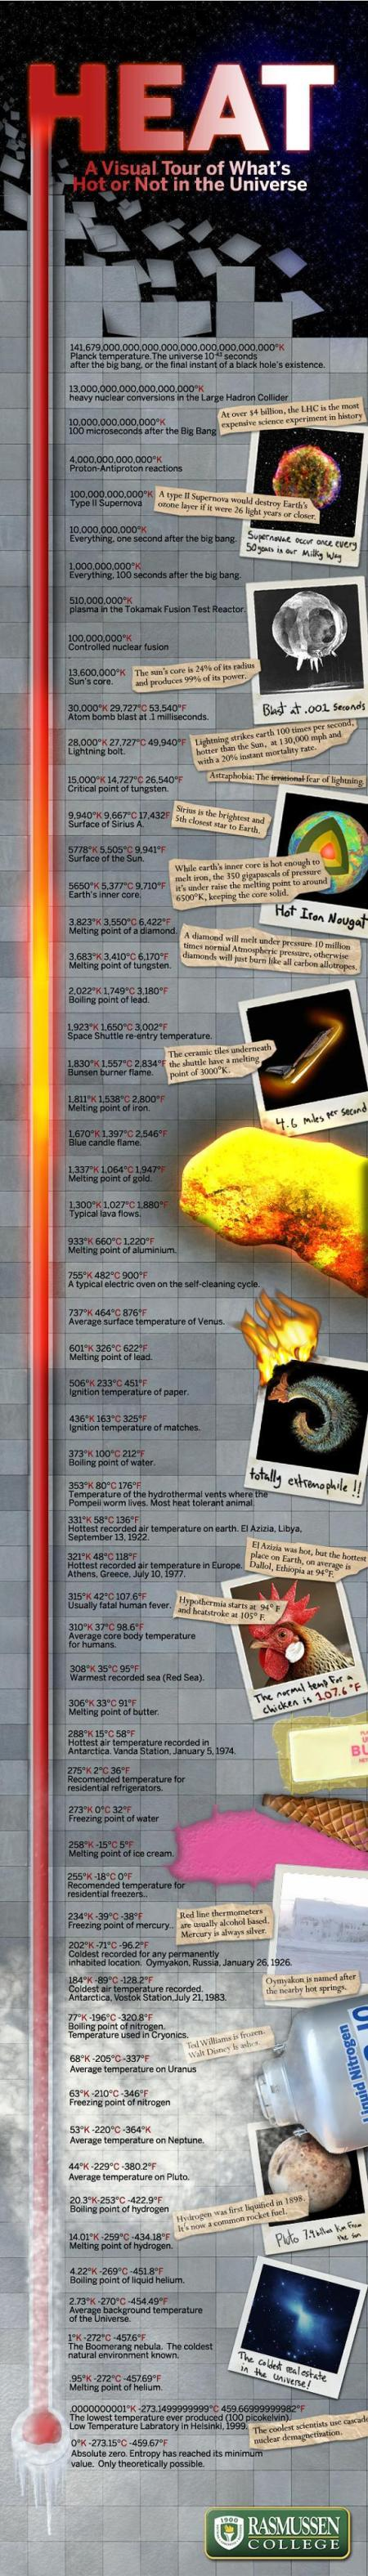 temperature-from-hottest-to-coldest-infographic